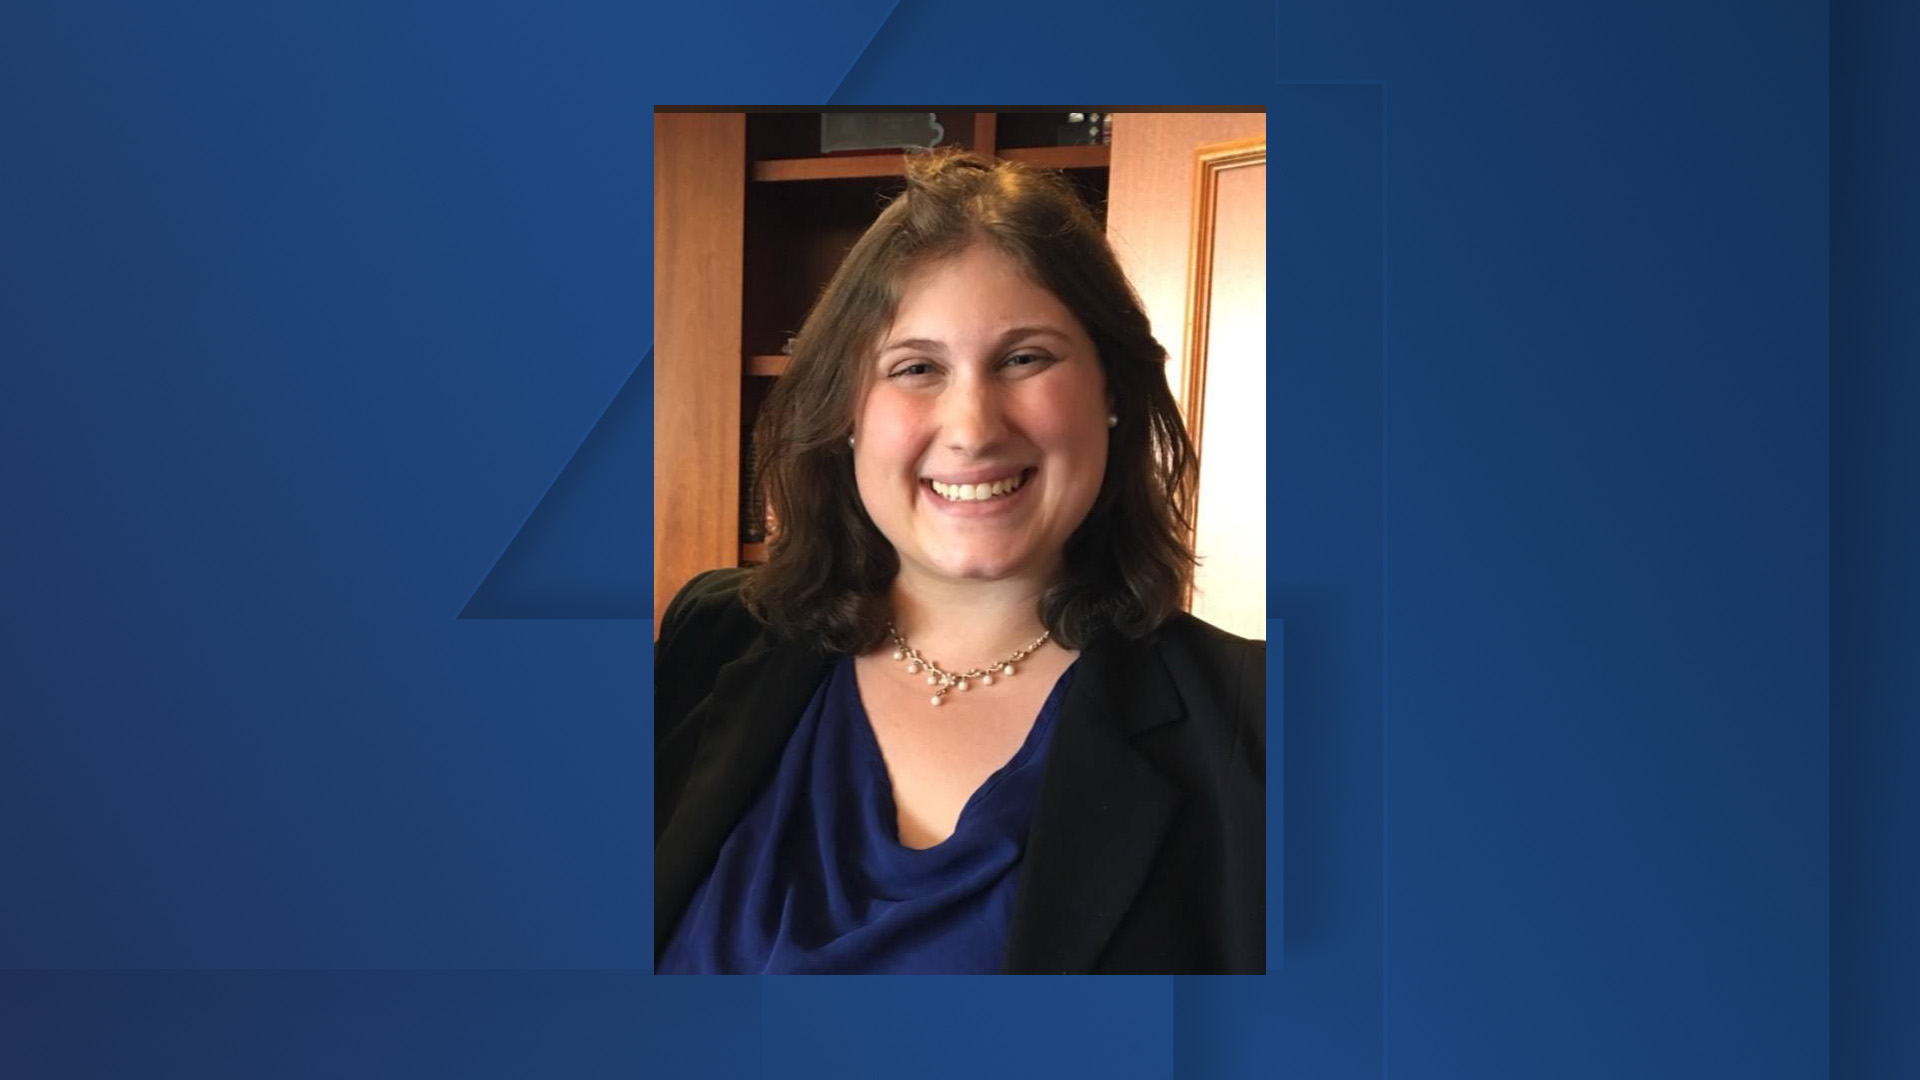 Jackson County assistant prosecutor dies of COVID-19